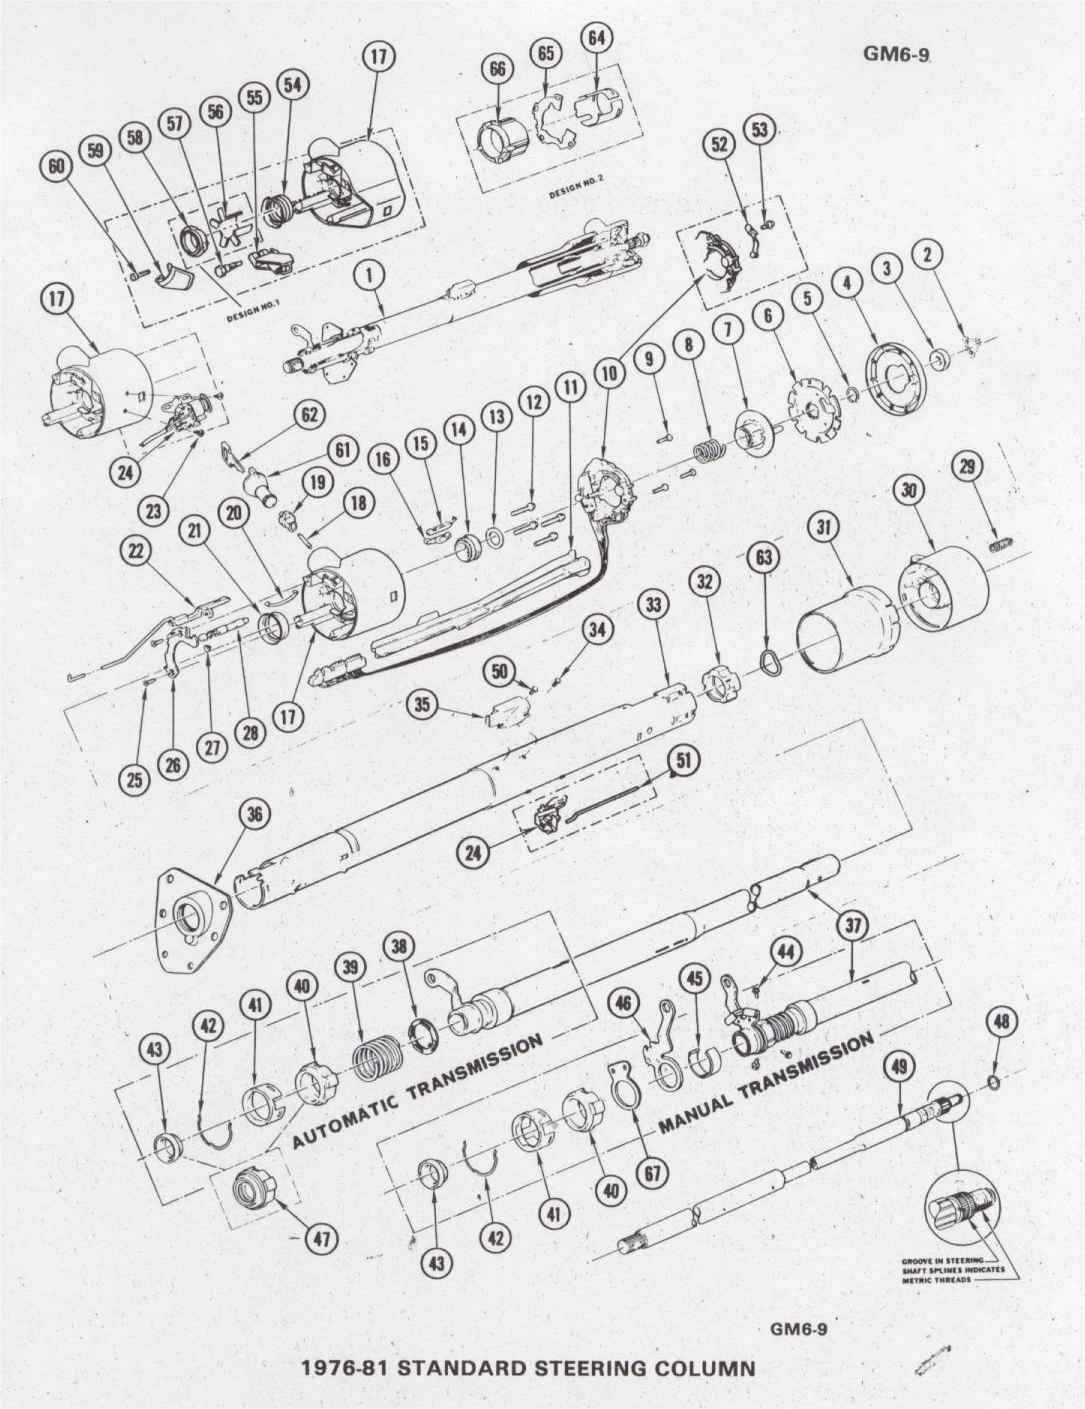 66 Pontiac Tilt Steering Column Diagram Free Download Wiring Diagram